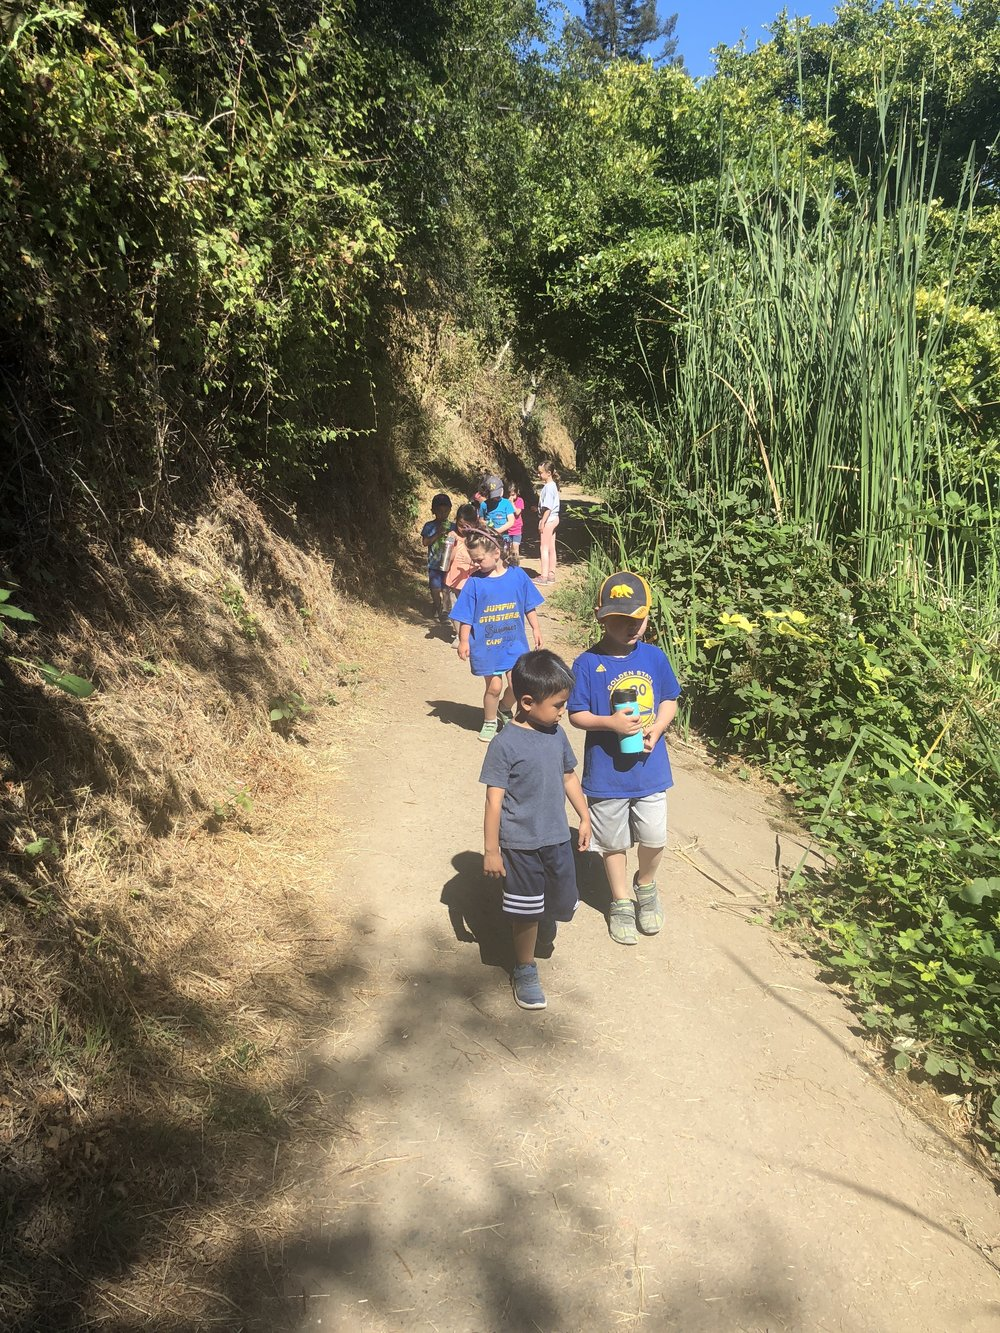 Trails and Outdoor Adventures - Explore the beautiful trails at Lake Temescal Regional Park. We will hike and explore the various trails and discover living creatures that call Lake Temescal home.